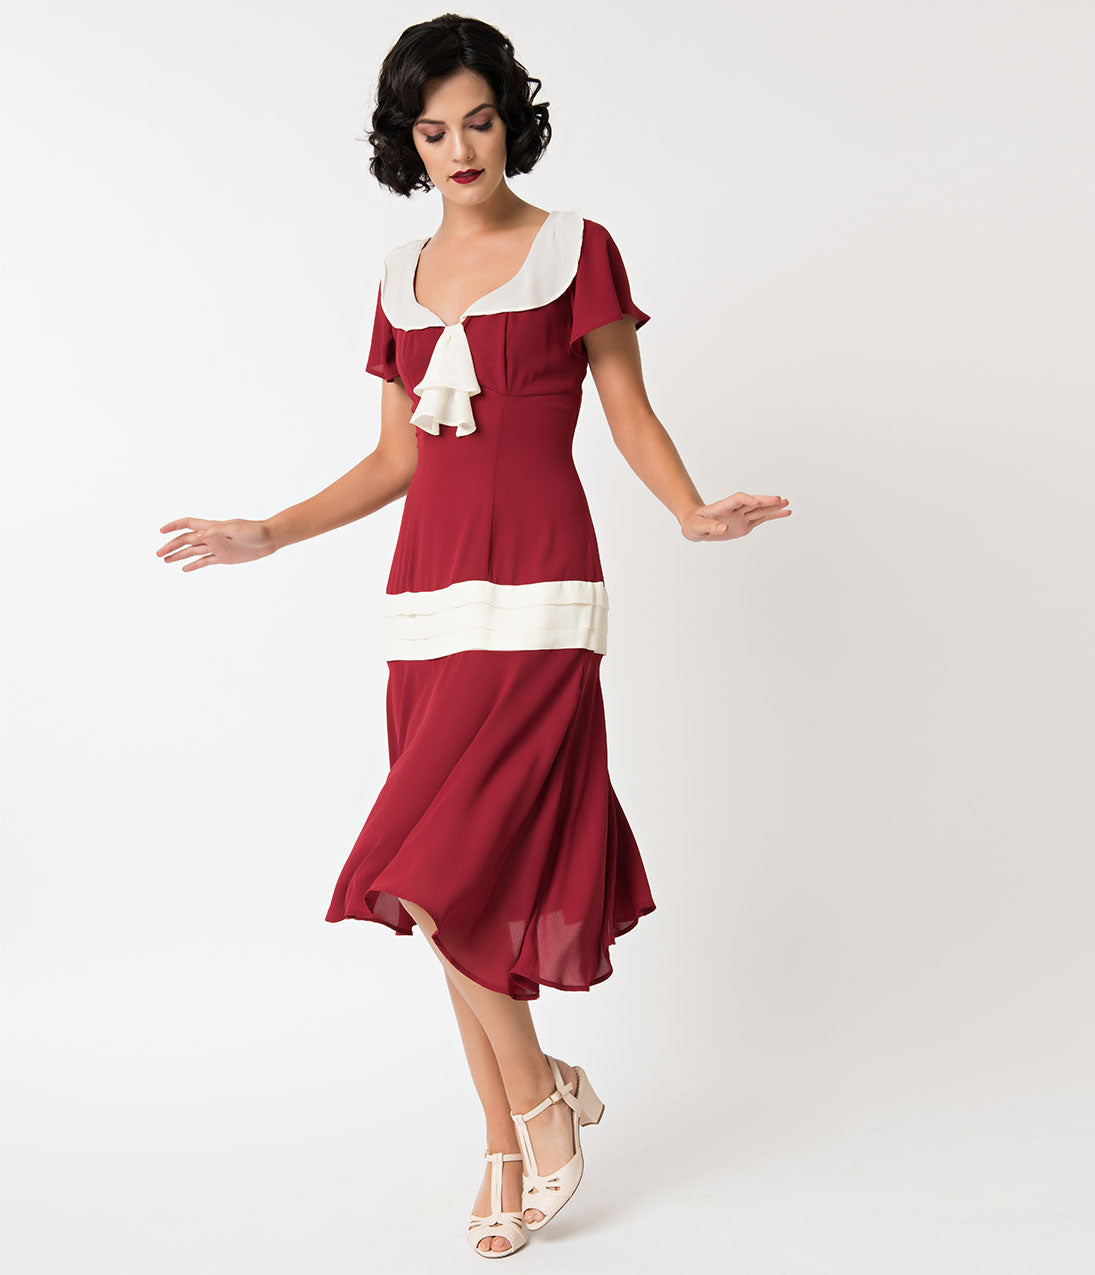 Vintage Christmas Gift Ideas for Women Unique Vintage 1920S Burgundy  Cream Wilshire Flapper Day Dress $66.00 AT vintagedancer.com